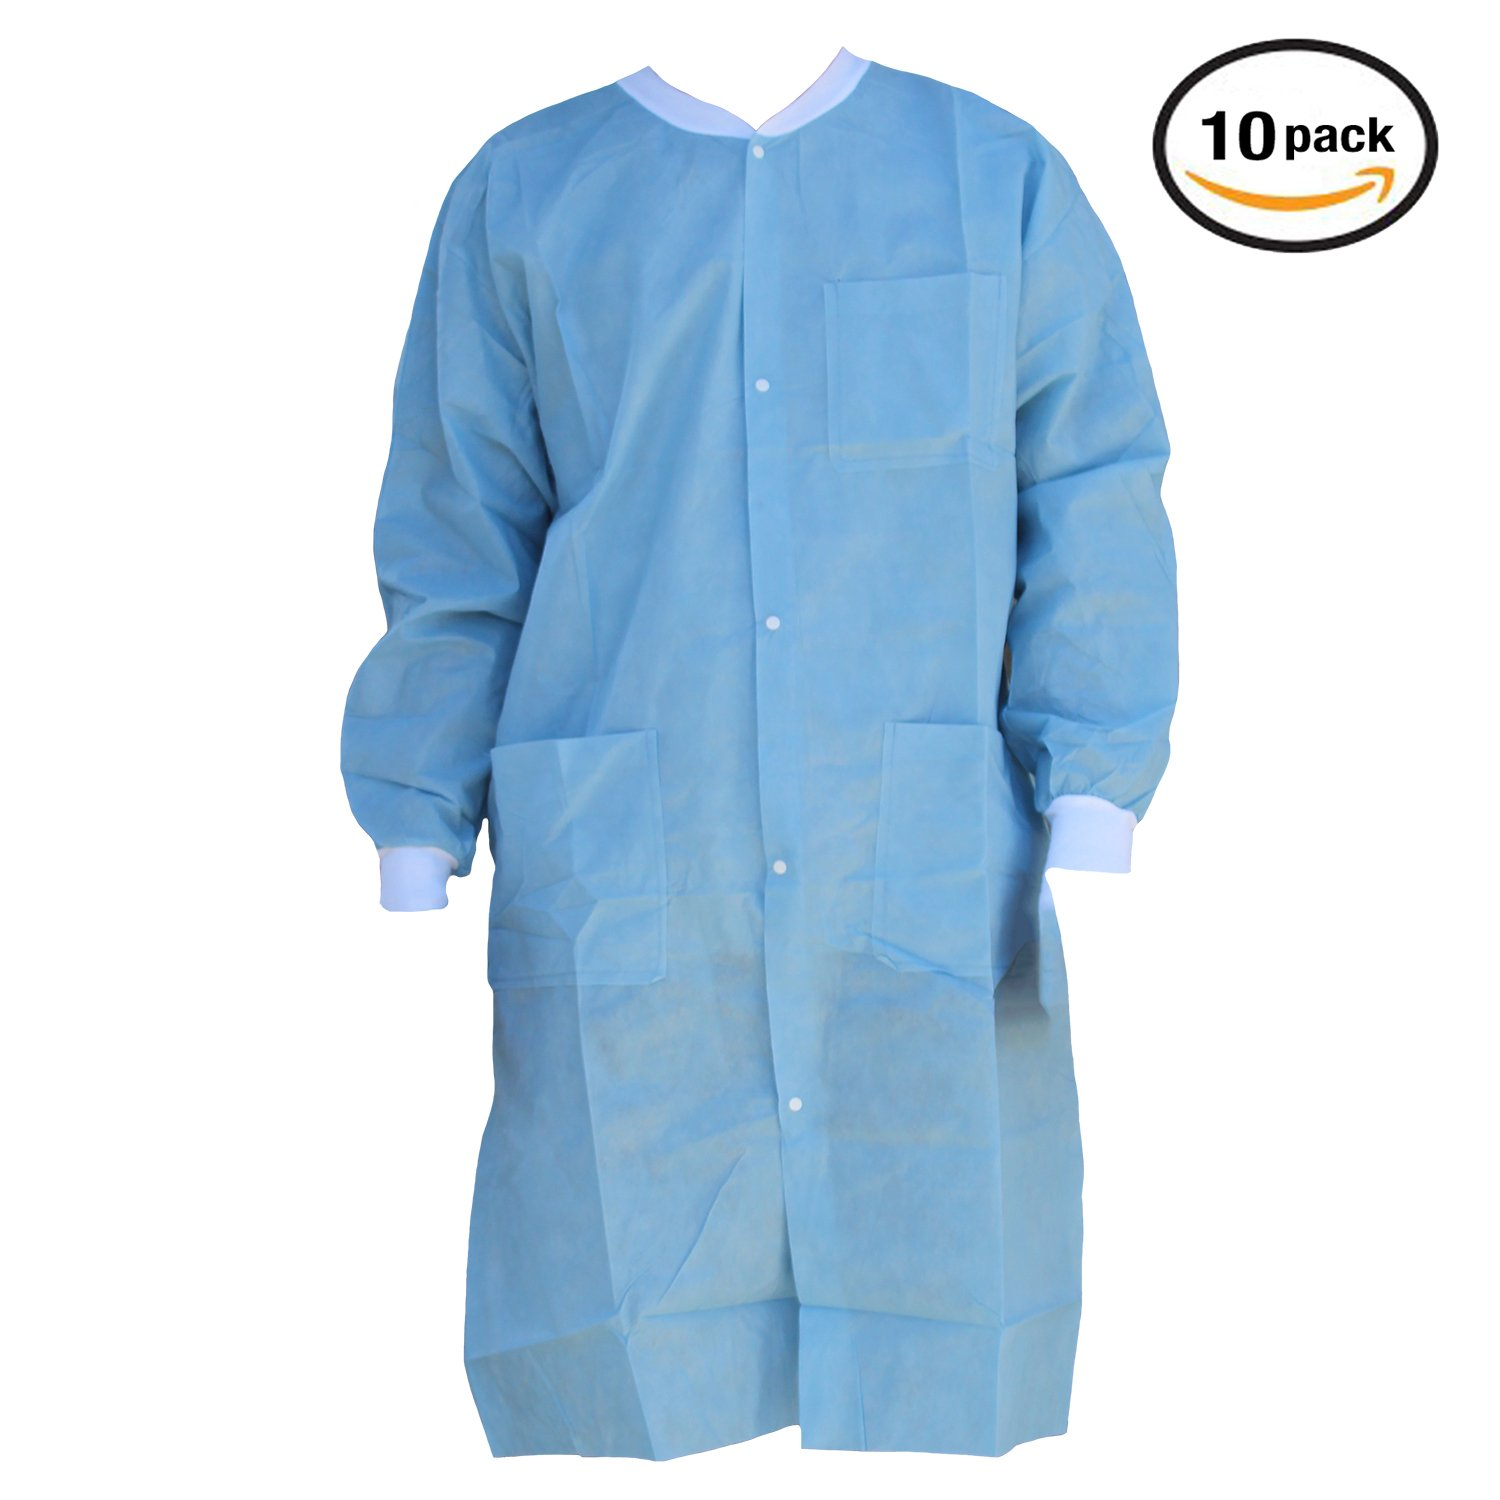 Premium Quality SMS Coat for Medical Professionals, Made of SMS Soft Fabric 3 Layer, Lab SMS Coat Static Free, Latex Free, Pack of 10, (Medium, Ceil Blue)